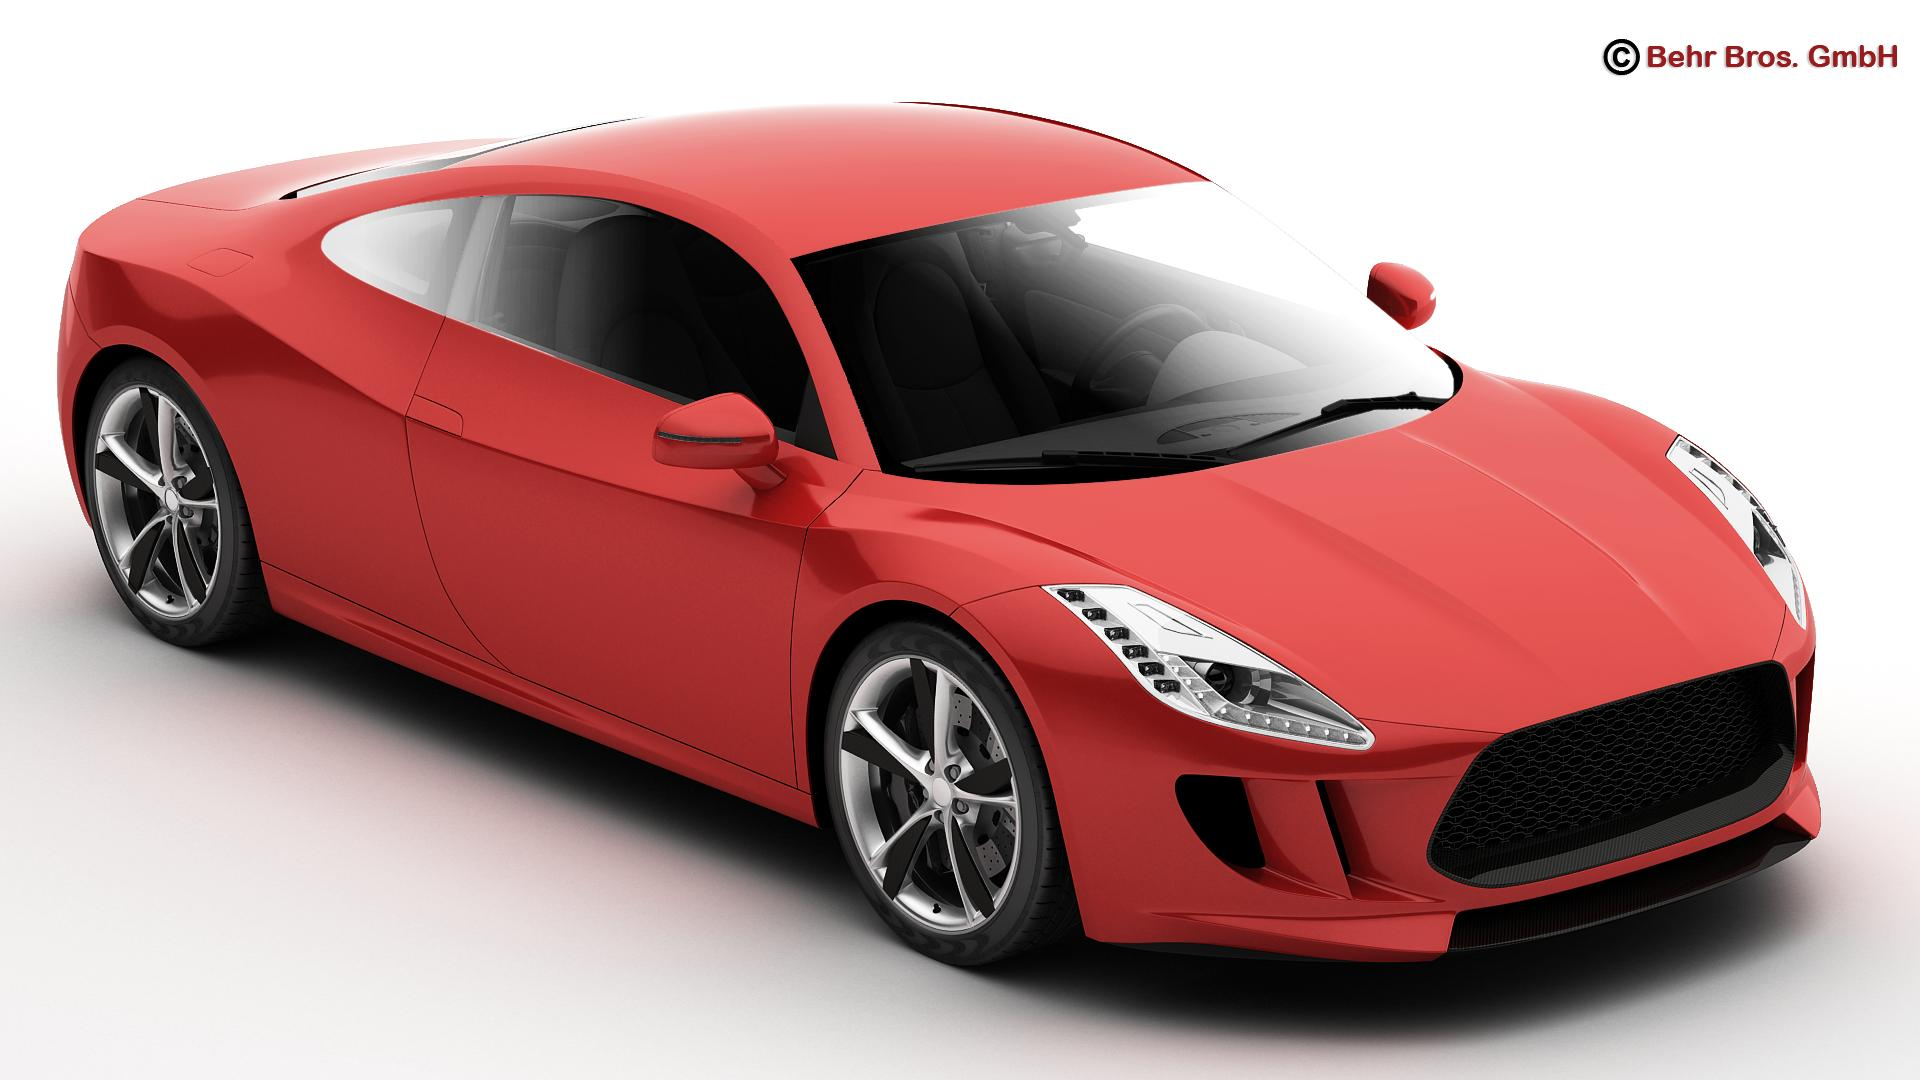 generic sports car 3d model 3ds max fbx c4d lwo ma mb obj 160515